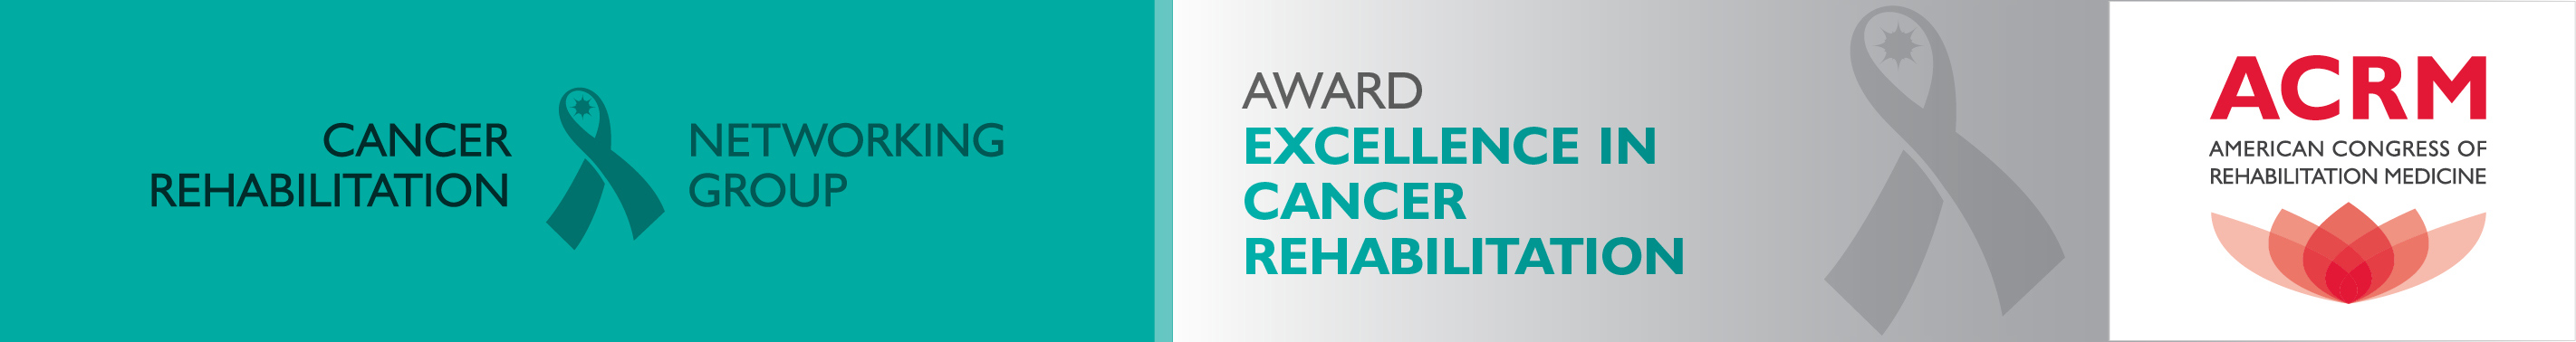 ACRM Excellence in Cancer Rehabilitation Award